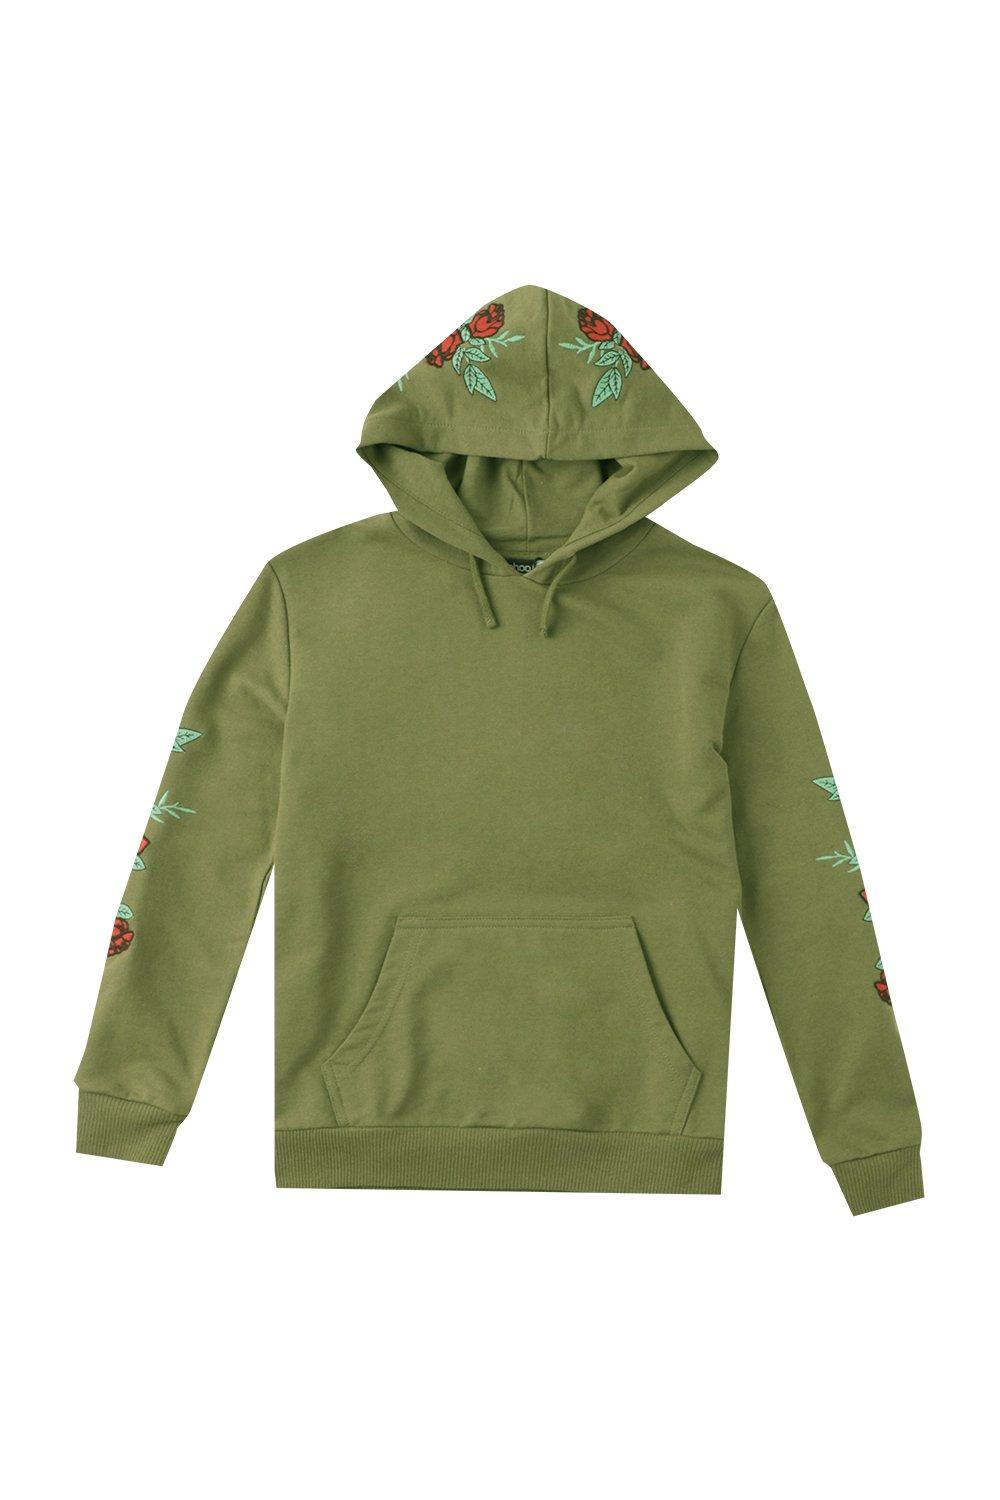 Boohoo mens boys embroidered floral hoodie in khaki size